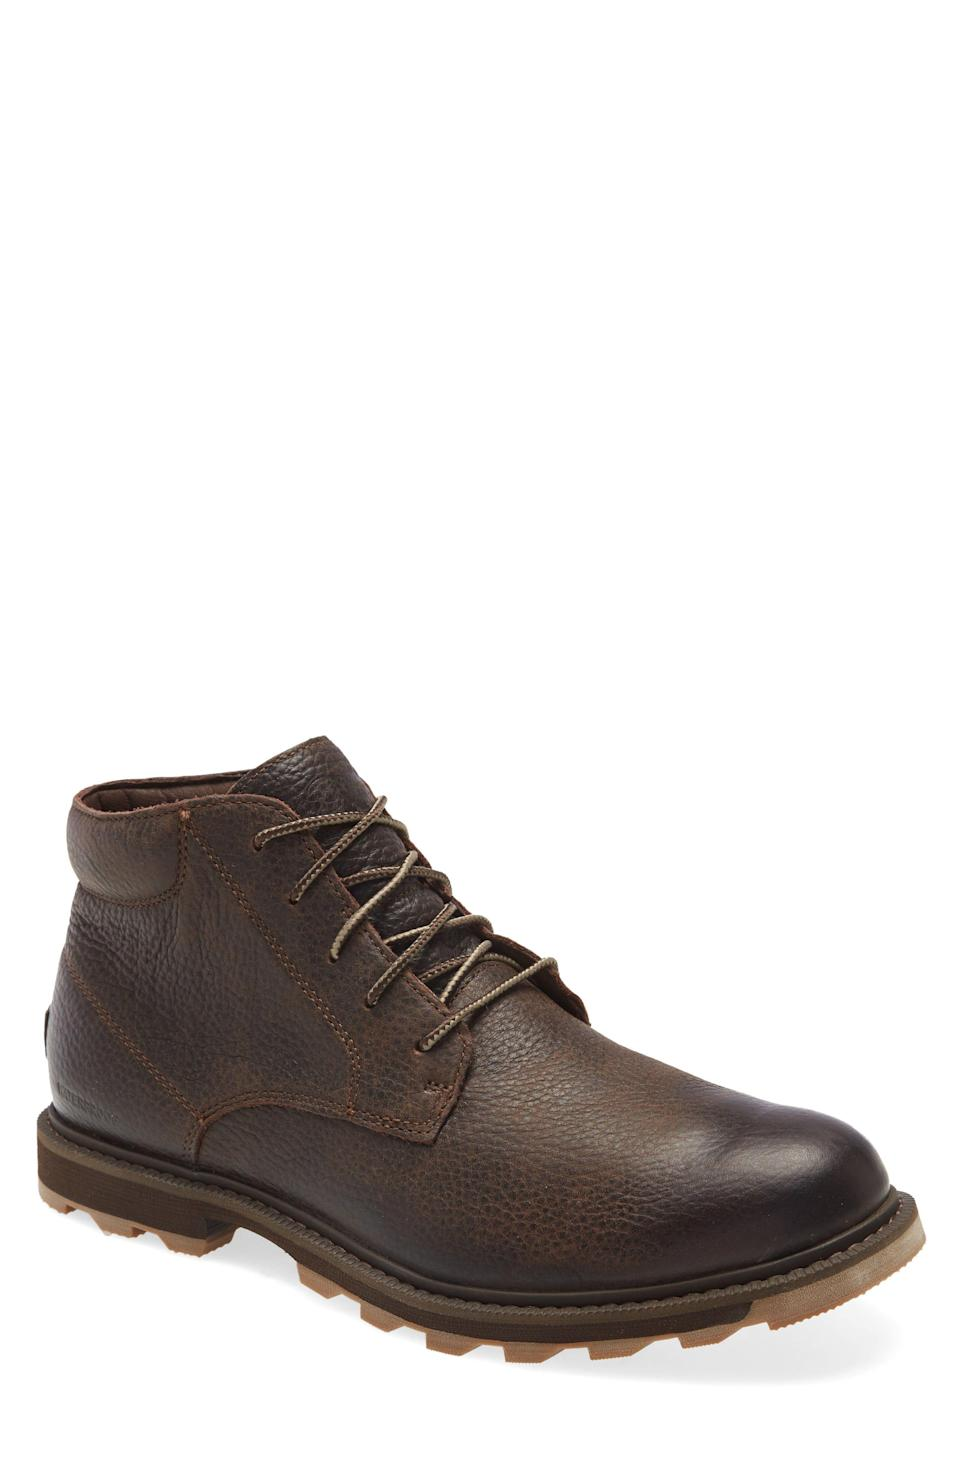 """<p><strong>SOREL</strong></p><p>nordstrom.com</p><p><strong>$109.90</strong></p><p><a href=""""https://go.redirectingat.com?id=74968X1596630&url=https%3A%2F%2Fwww.nordstrom.com%2Fs%2Fsorel-madson-ii-waterproof-chukka-boot-men%2F5524899&sref=https%3A%2F%2Fwww.menshealth.com%2Fstyle%2Fg33510339%2Fnordstrom-anniversary-sale-2020%2F"""" rel=""""nofollow noopener"""" target=""""_blank"""" data-ylk=""""slk:Shop Now"""" class=""""link rapid-noclick-resp"""">Shop Now</a></p><p><strong>$175 $109.90 (38% off)</strong></p><p>Fall will be here before you know it, so trade in your sandals for this cool pair of chukkas. This water-proof style is perfect for running errands and socially distanced hikes.</p>"""